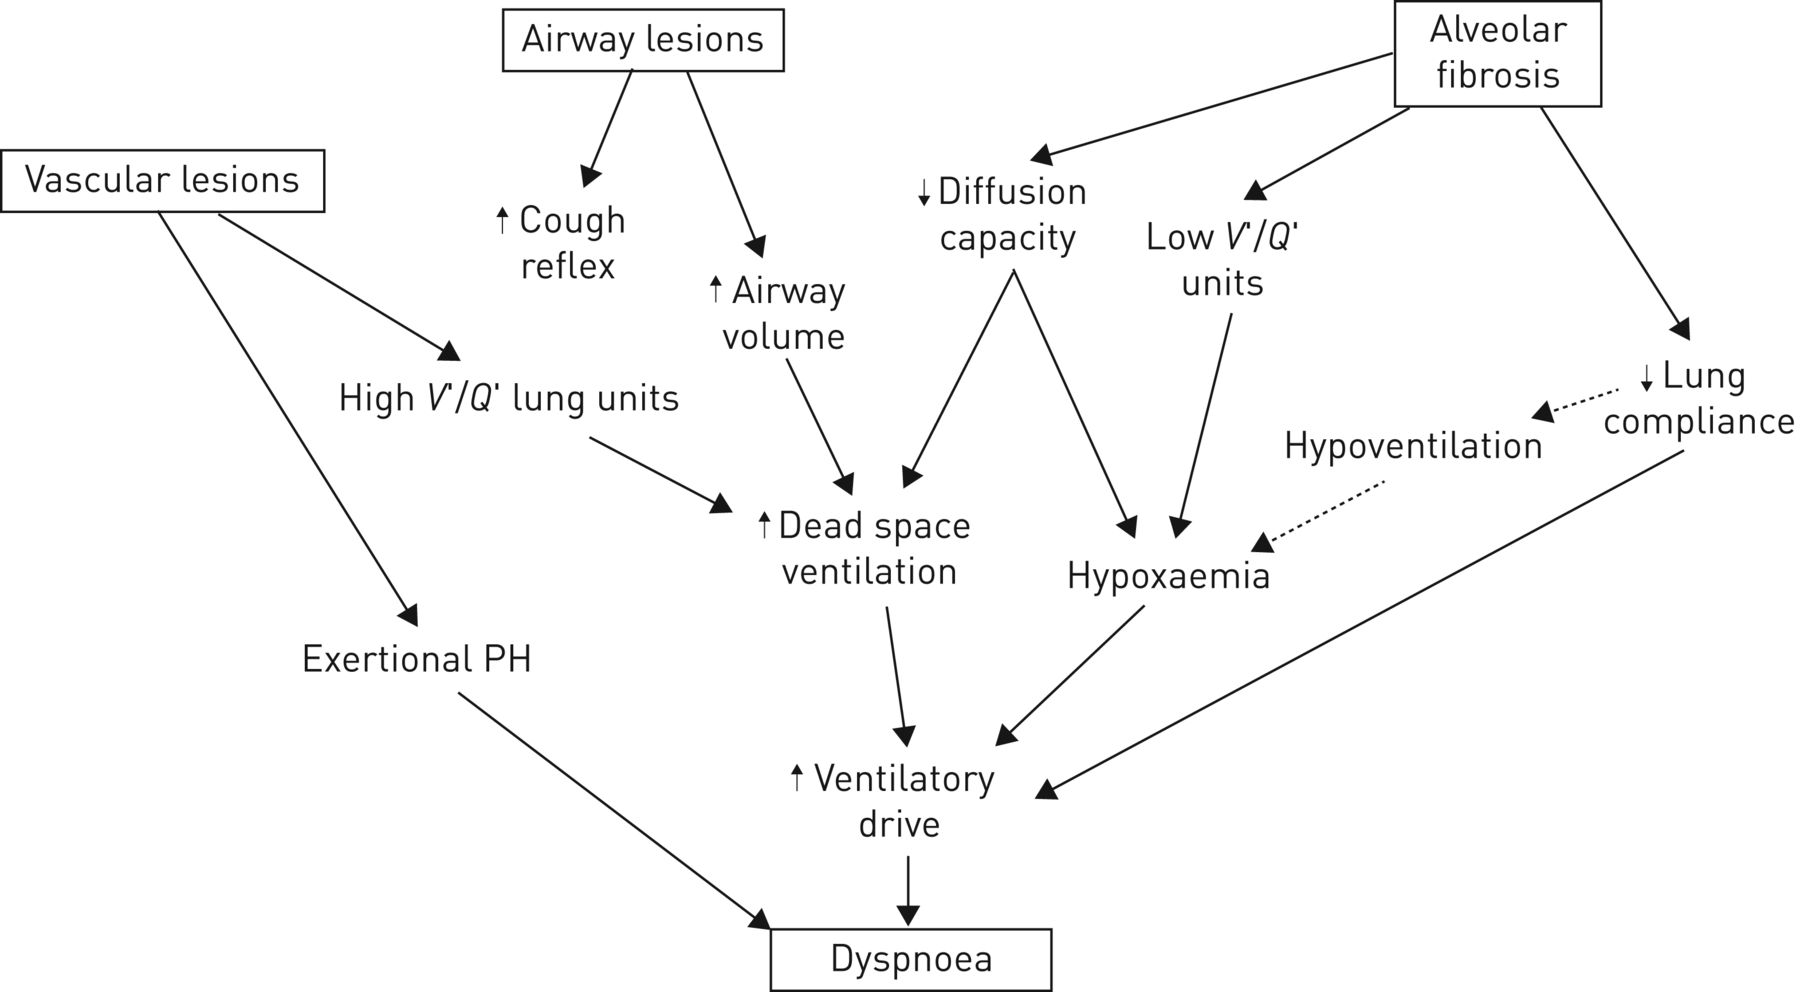 Physiology of the lung in idiopathic pulmonary fibrosis   European